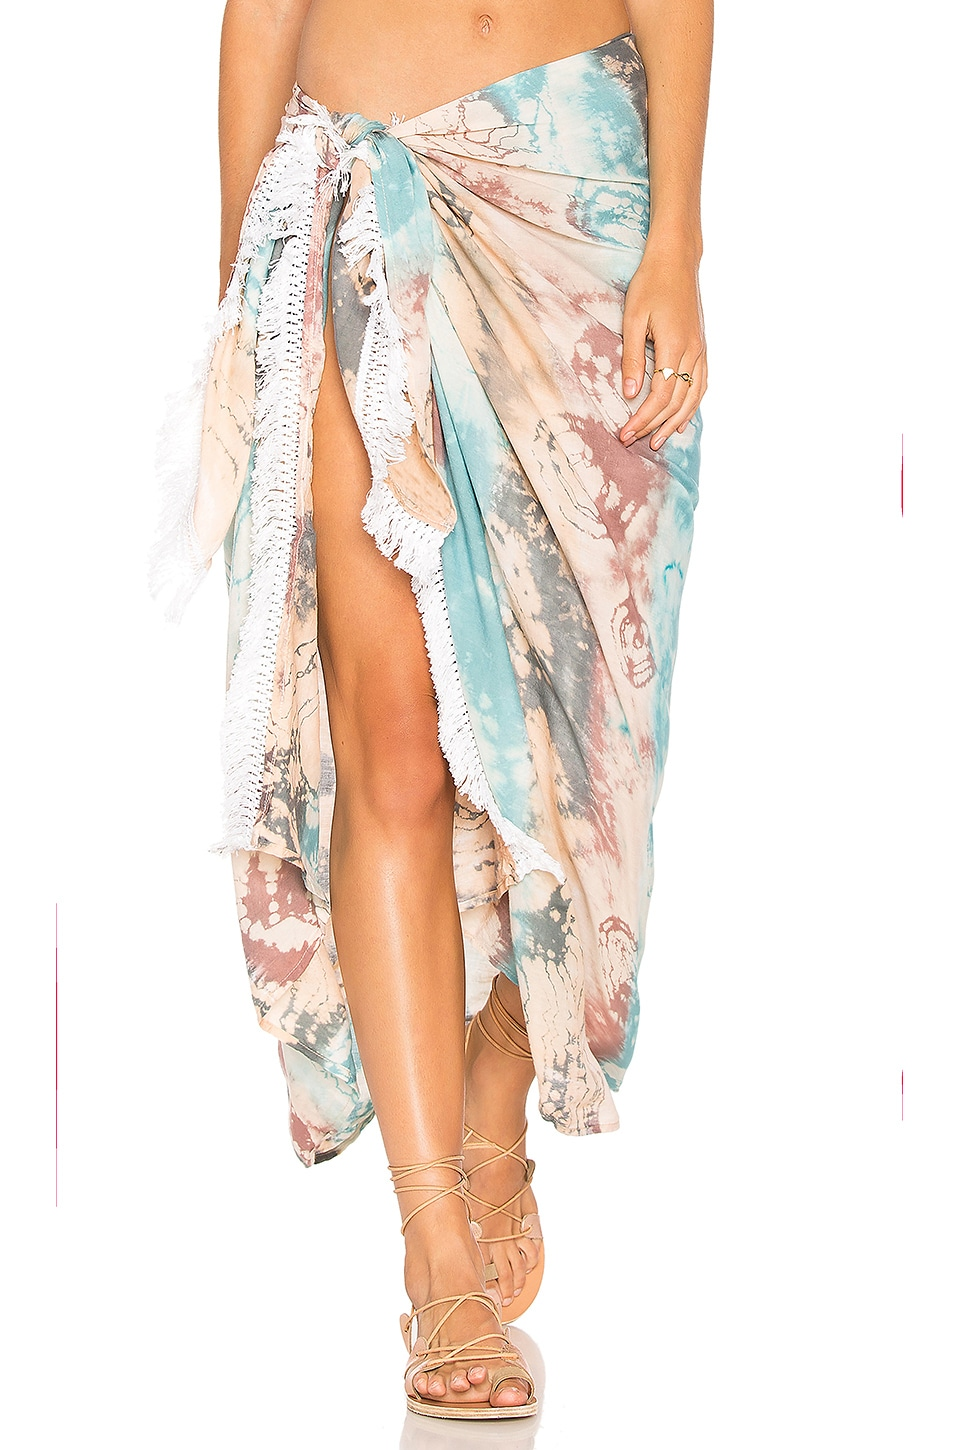 Tiare Hawaii Sarong in Island Aqua, Grey & Skin